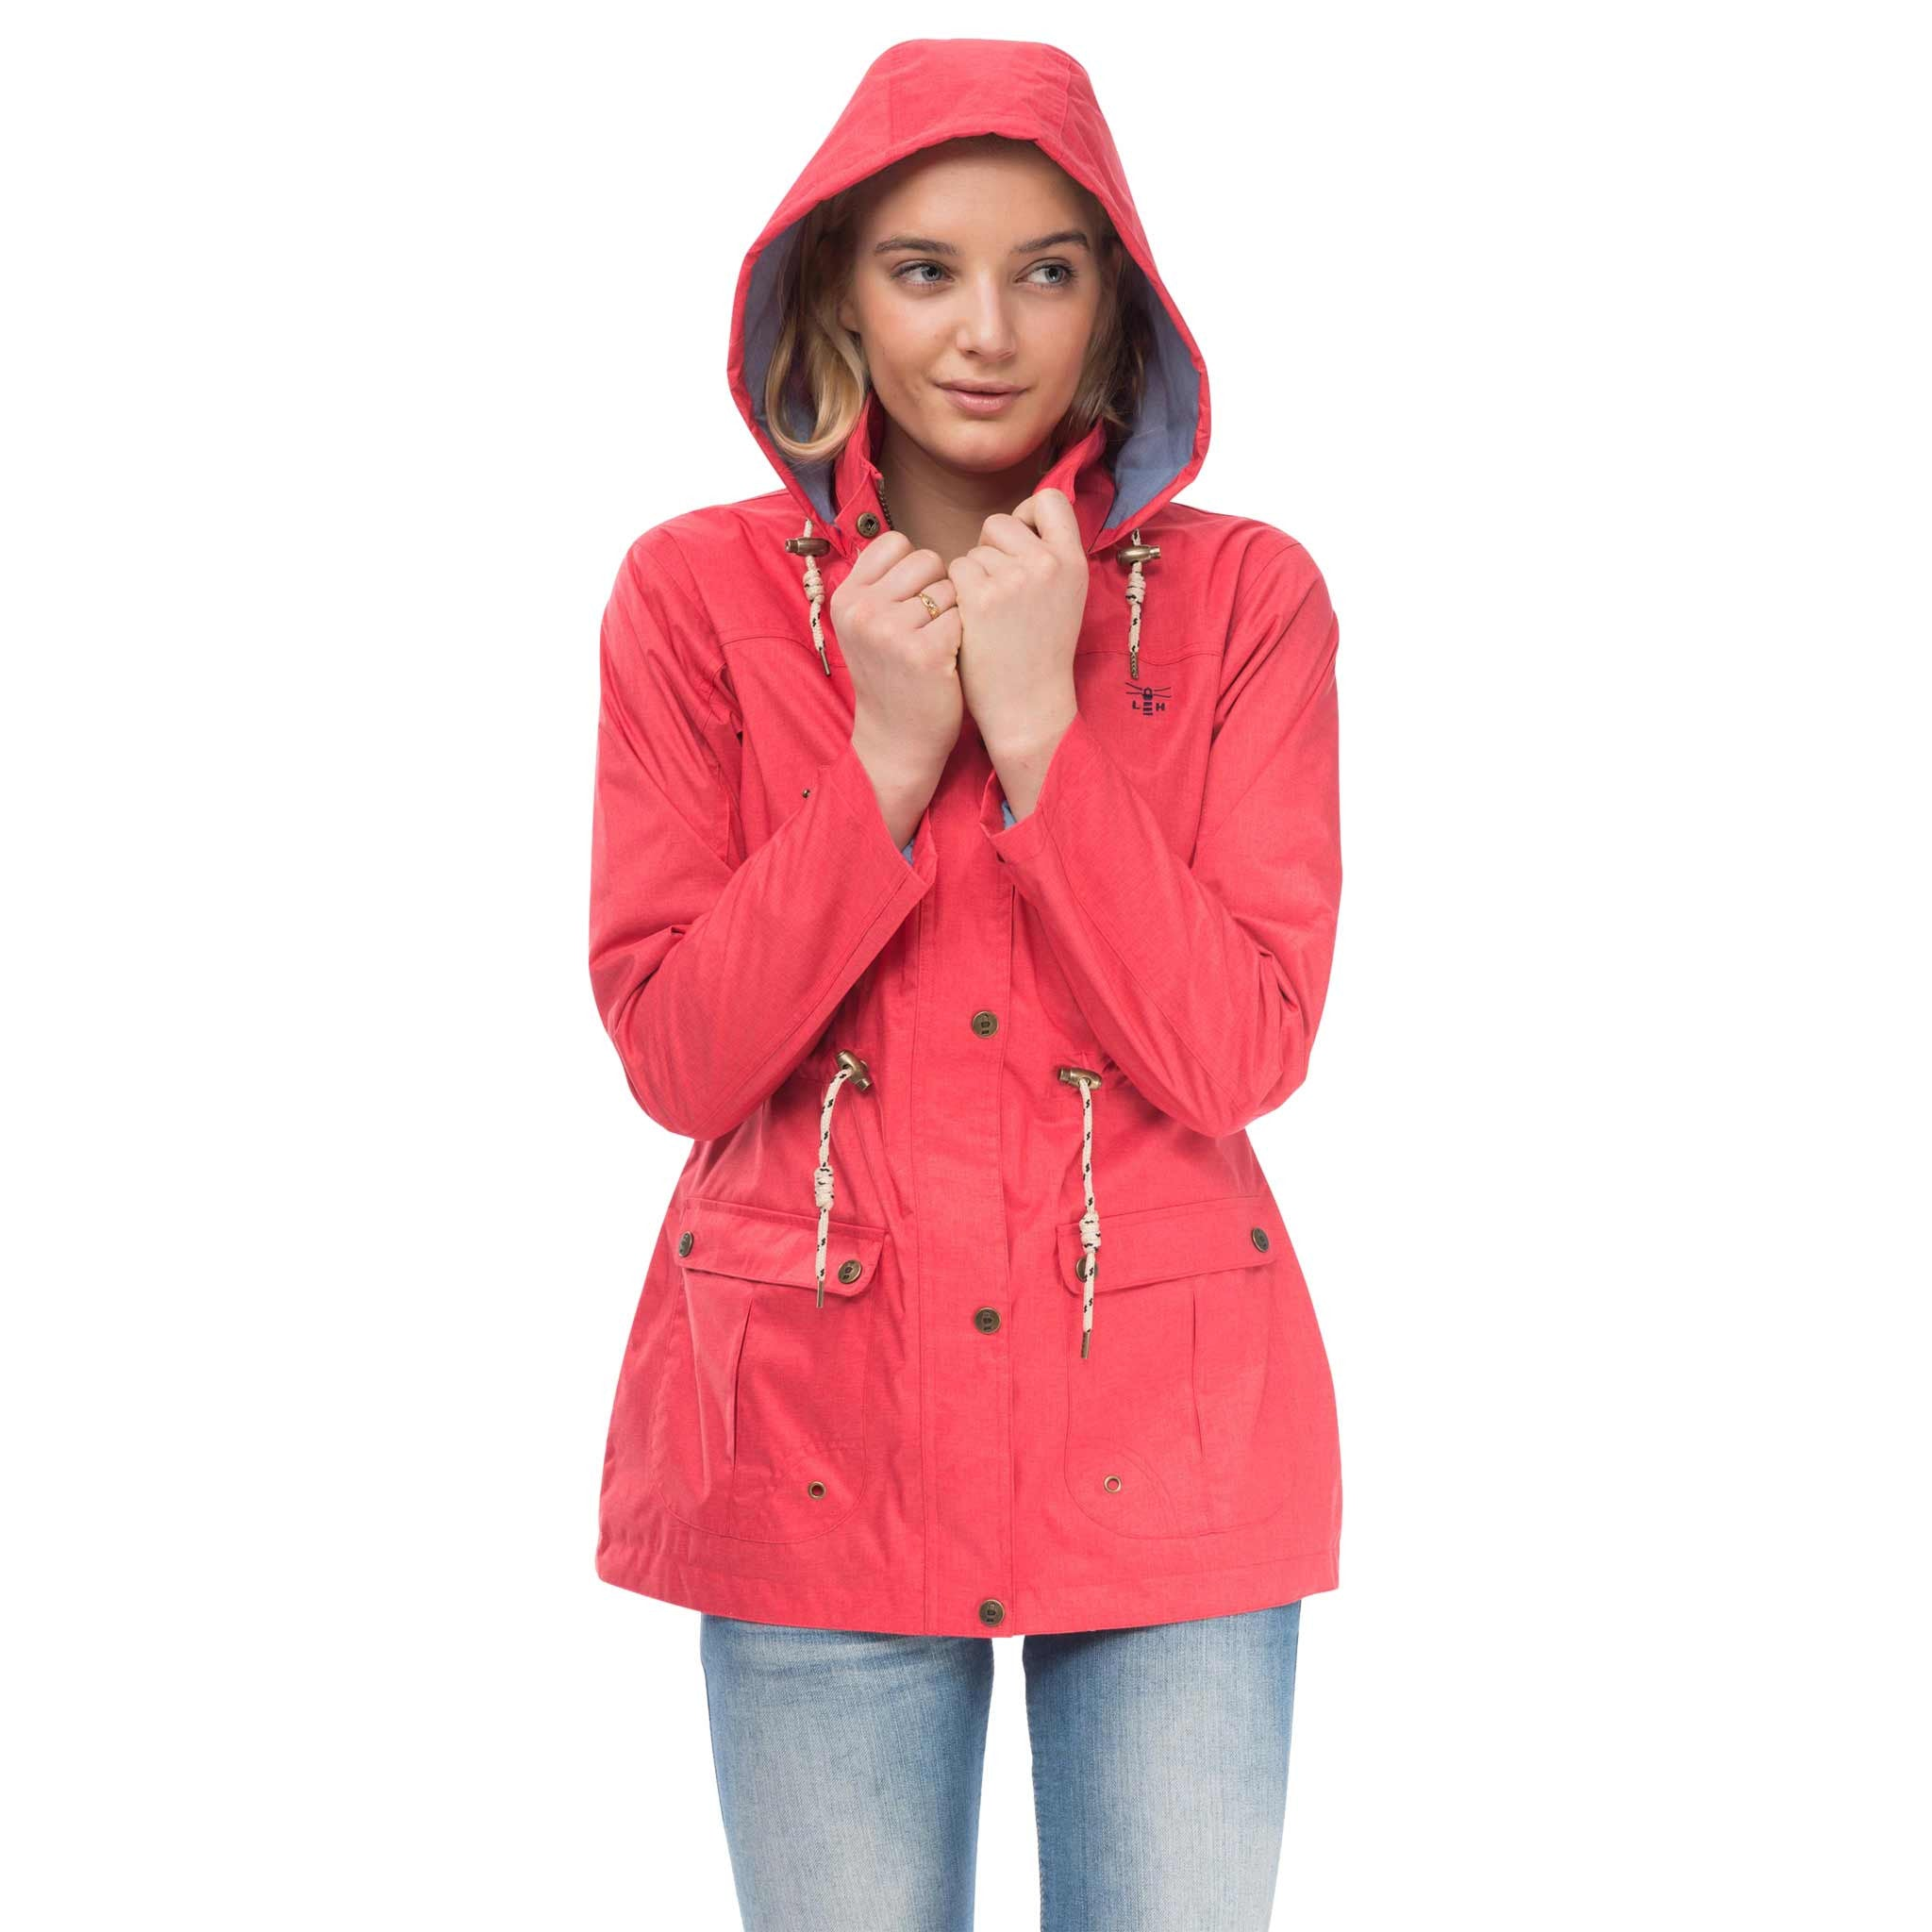 Isla Womens Waterproof Jacket in Watermelon Red, Hood Up, Modelled Front View | Lighthouse